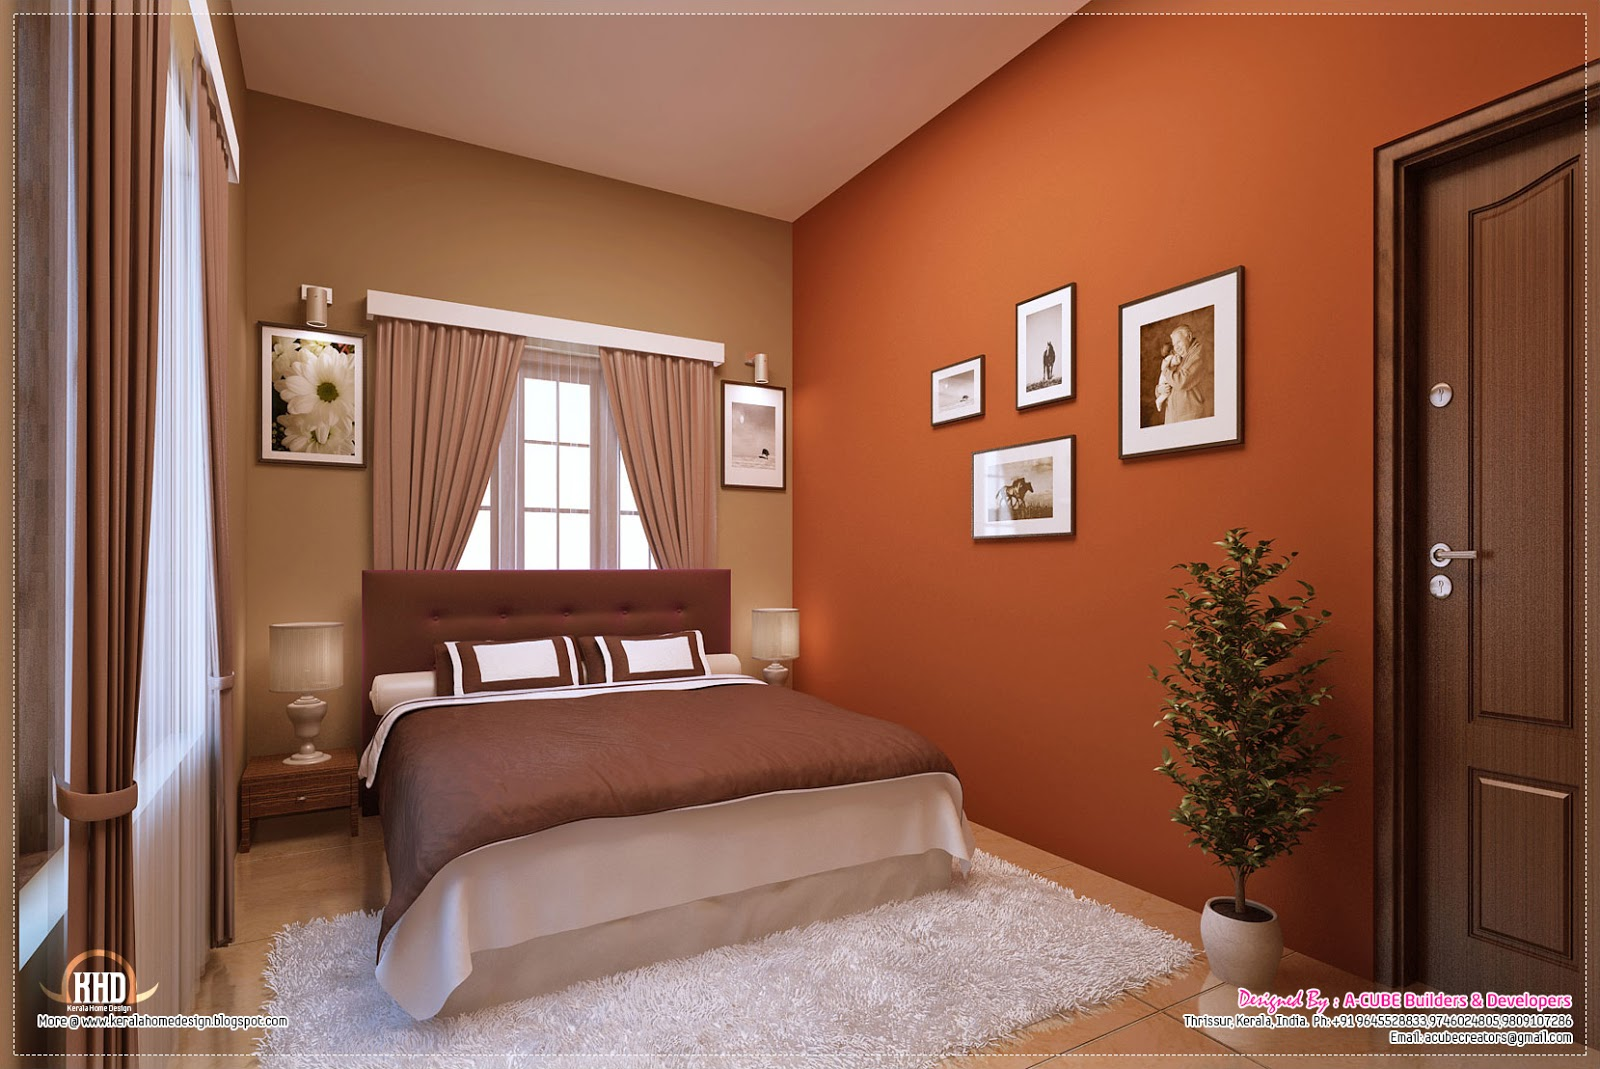 Awesome interior decoration ideas kerala home design and for Master bedroom interior